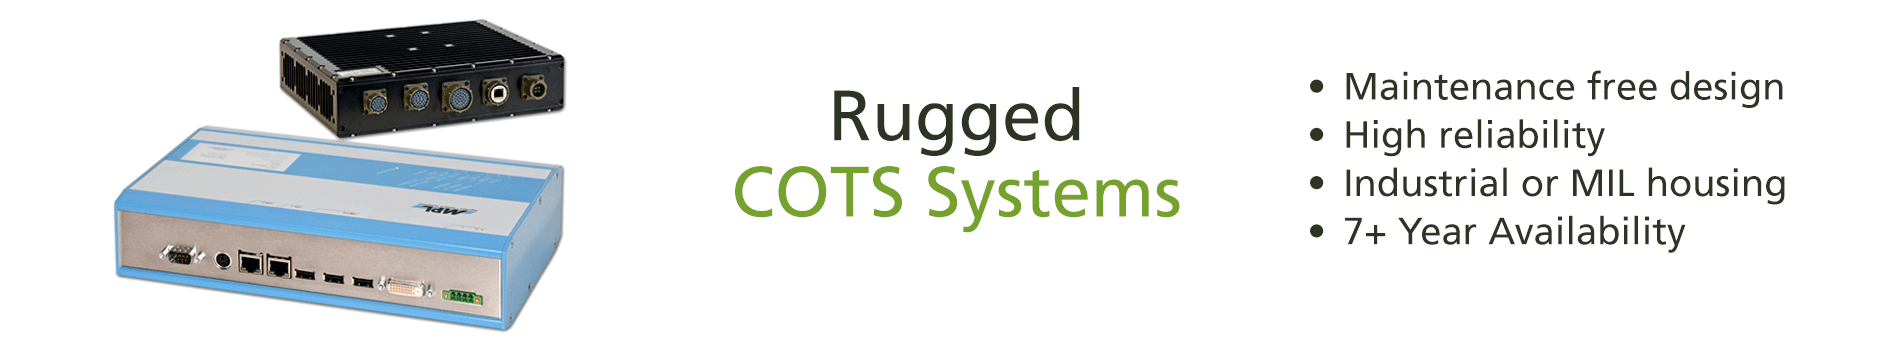 Rugges COTS Systems